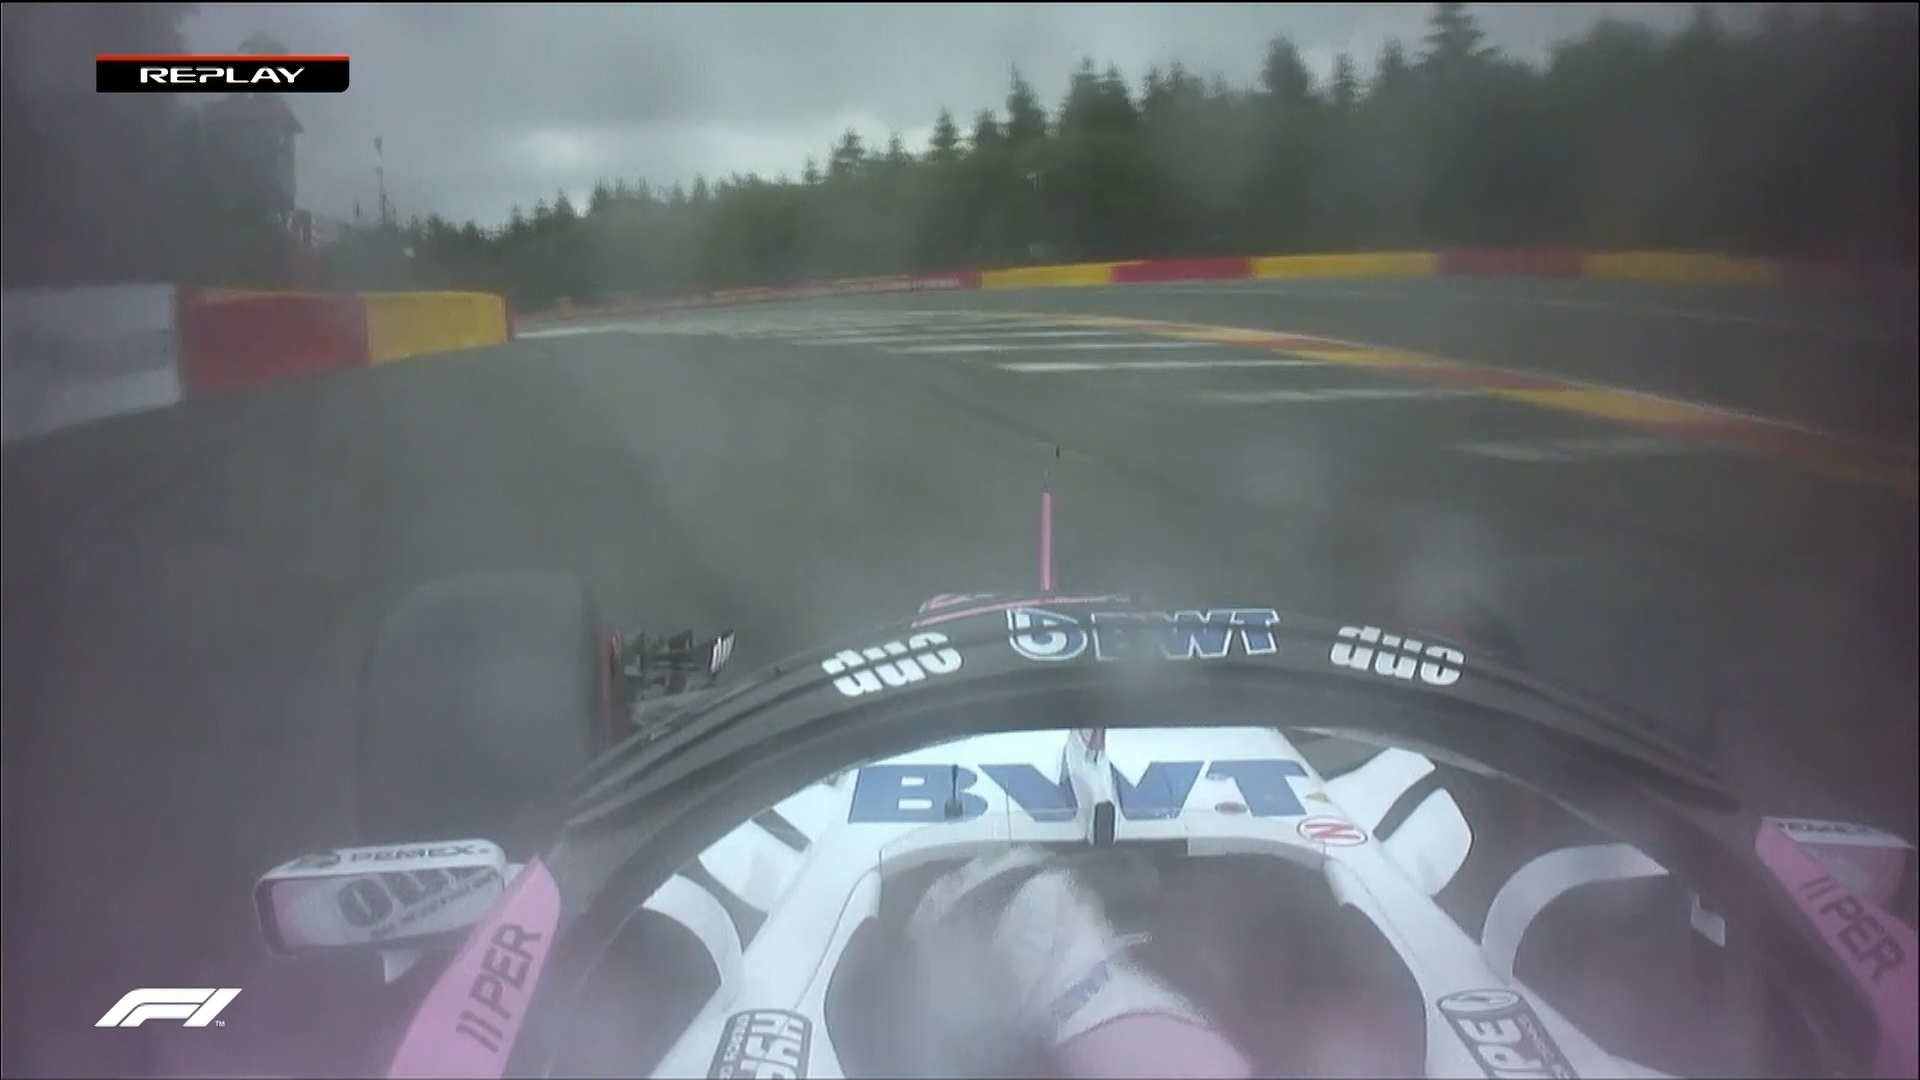 QUALIFYING: Slick-shod Perez just avoids barriers at Eau Rouge